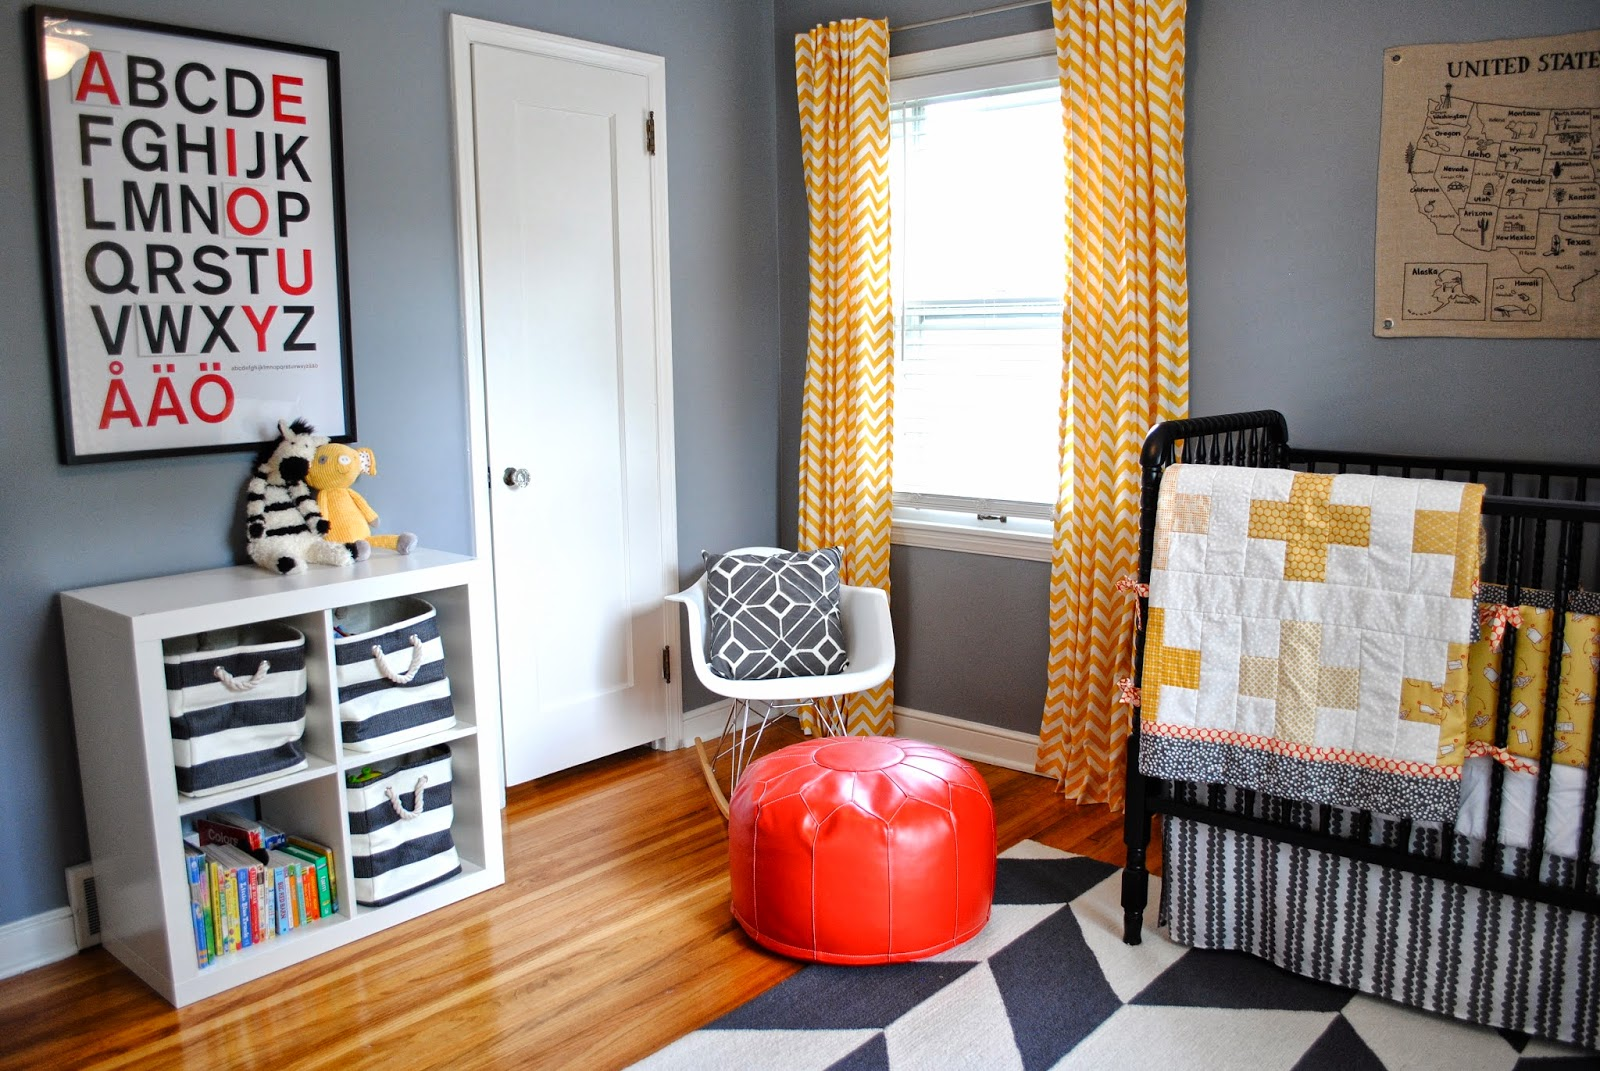 Breakfast at Gigi's: Liam's Nursery Featured on Apartment Therapy